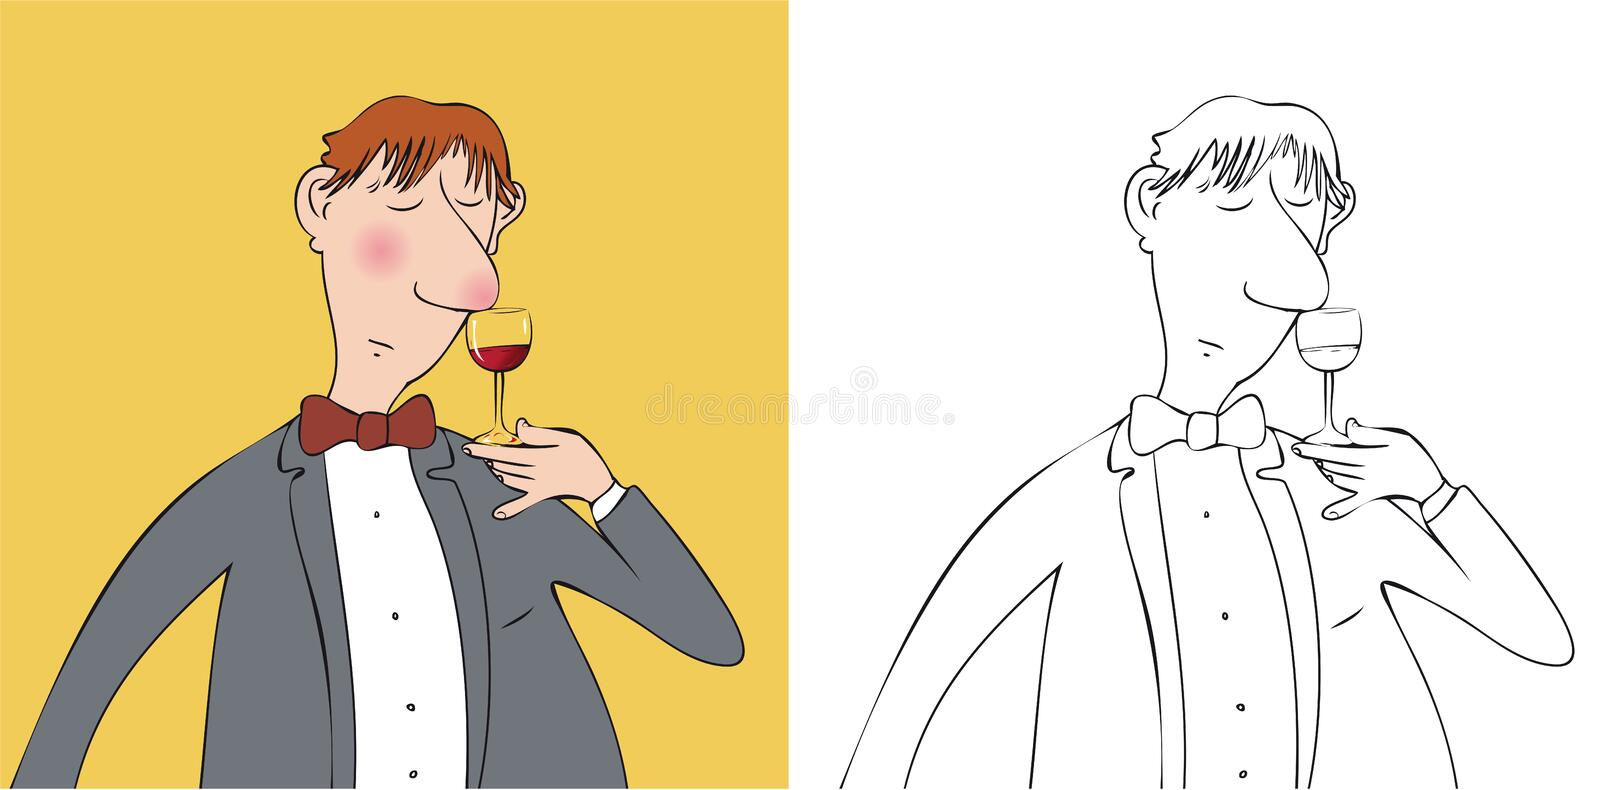 Wine taster. Man smelling and holding glass of wine vector illustration